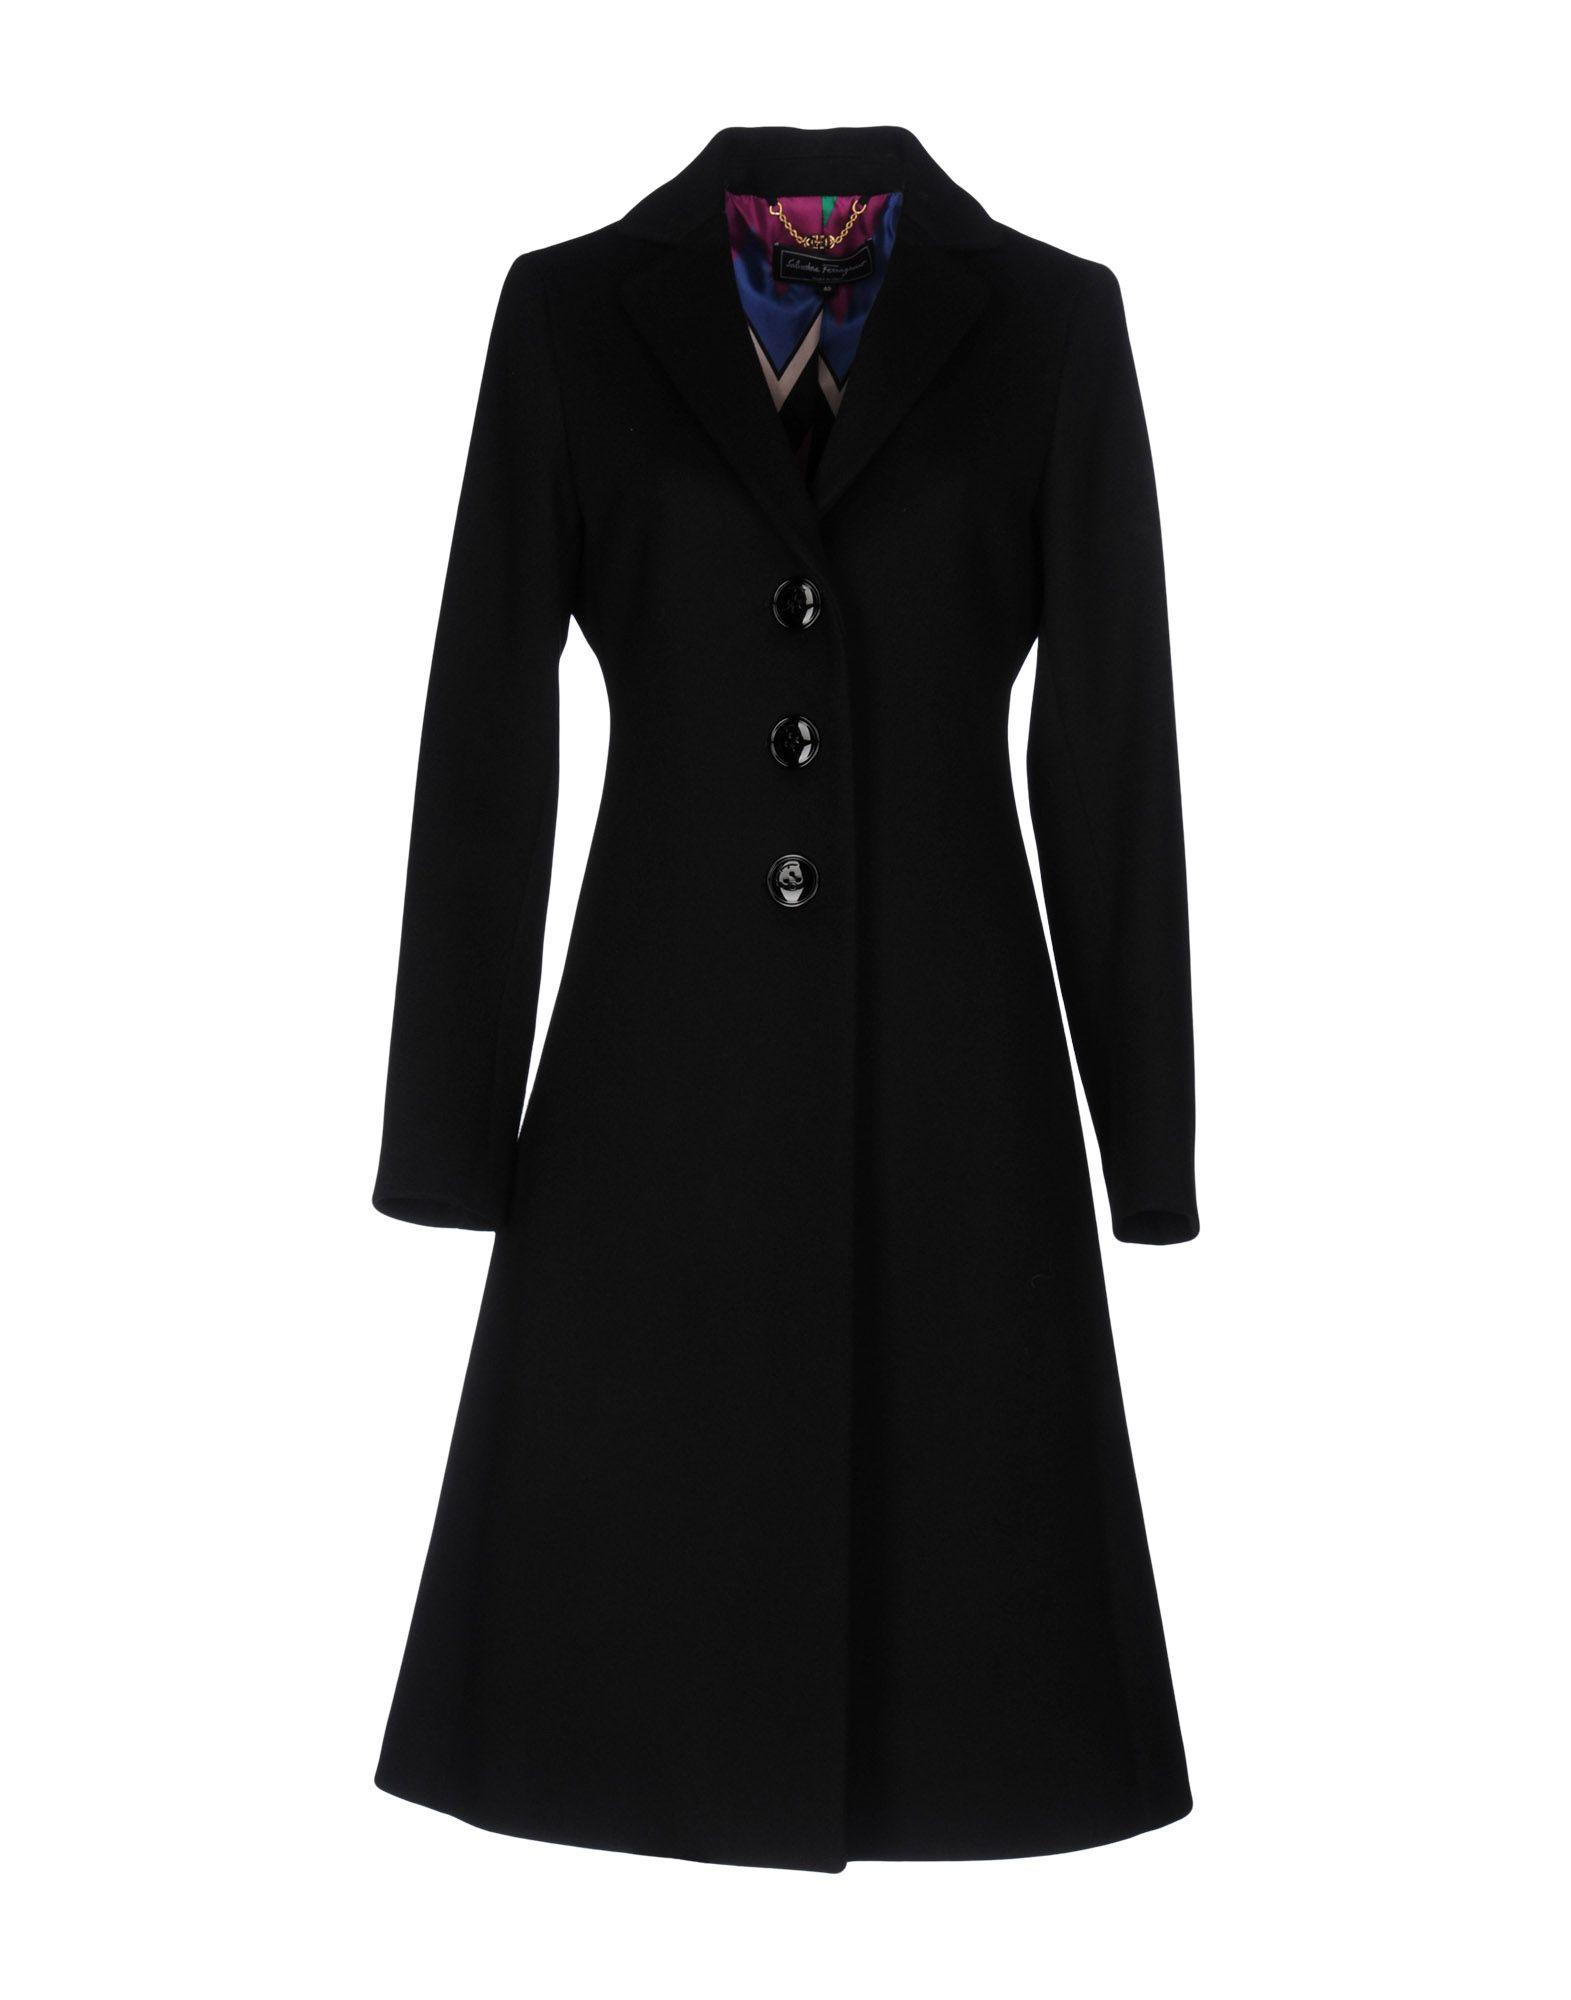 Lyst  Ferragamo Coat in Black